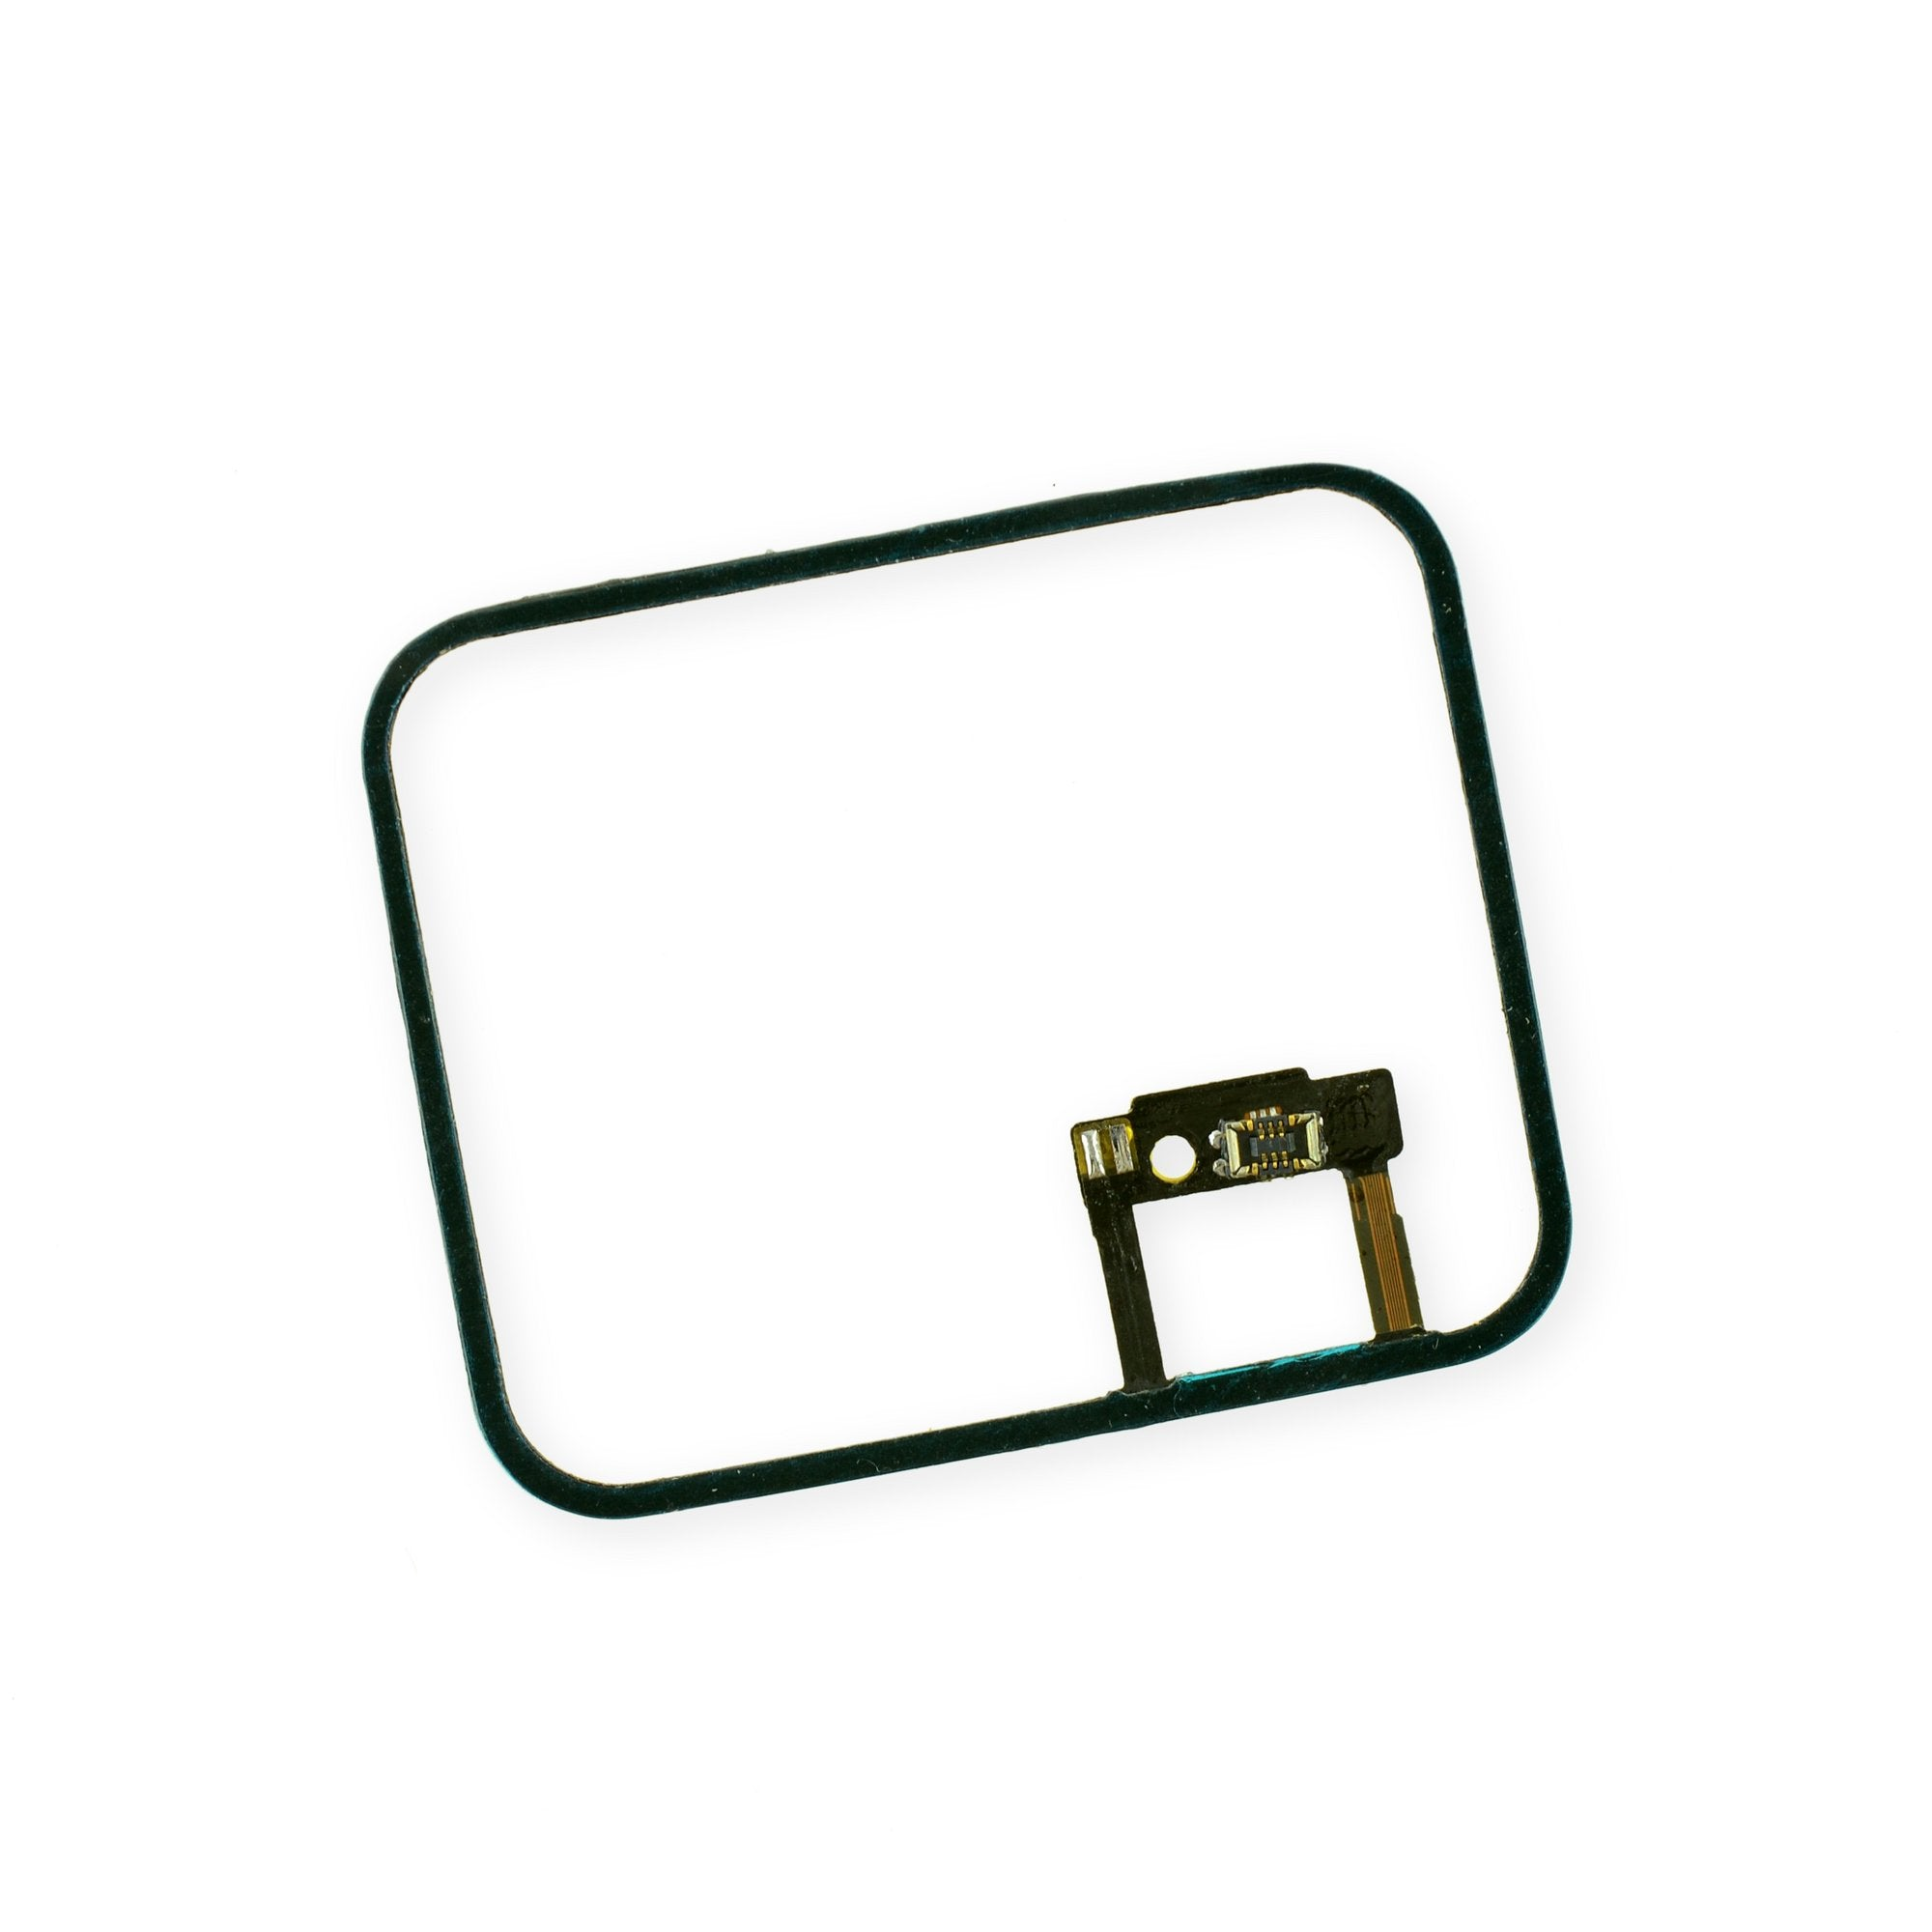 Apple Watch (42 mm, Original & Series 1) Force Touch Sensor Adhesive Gasket